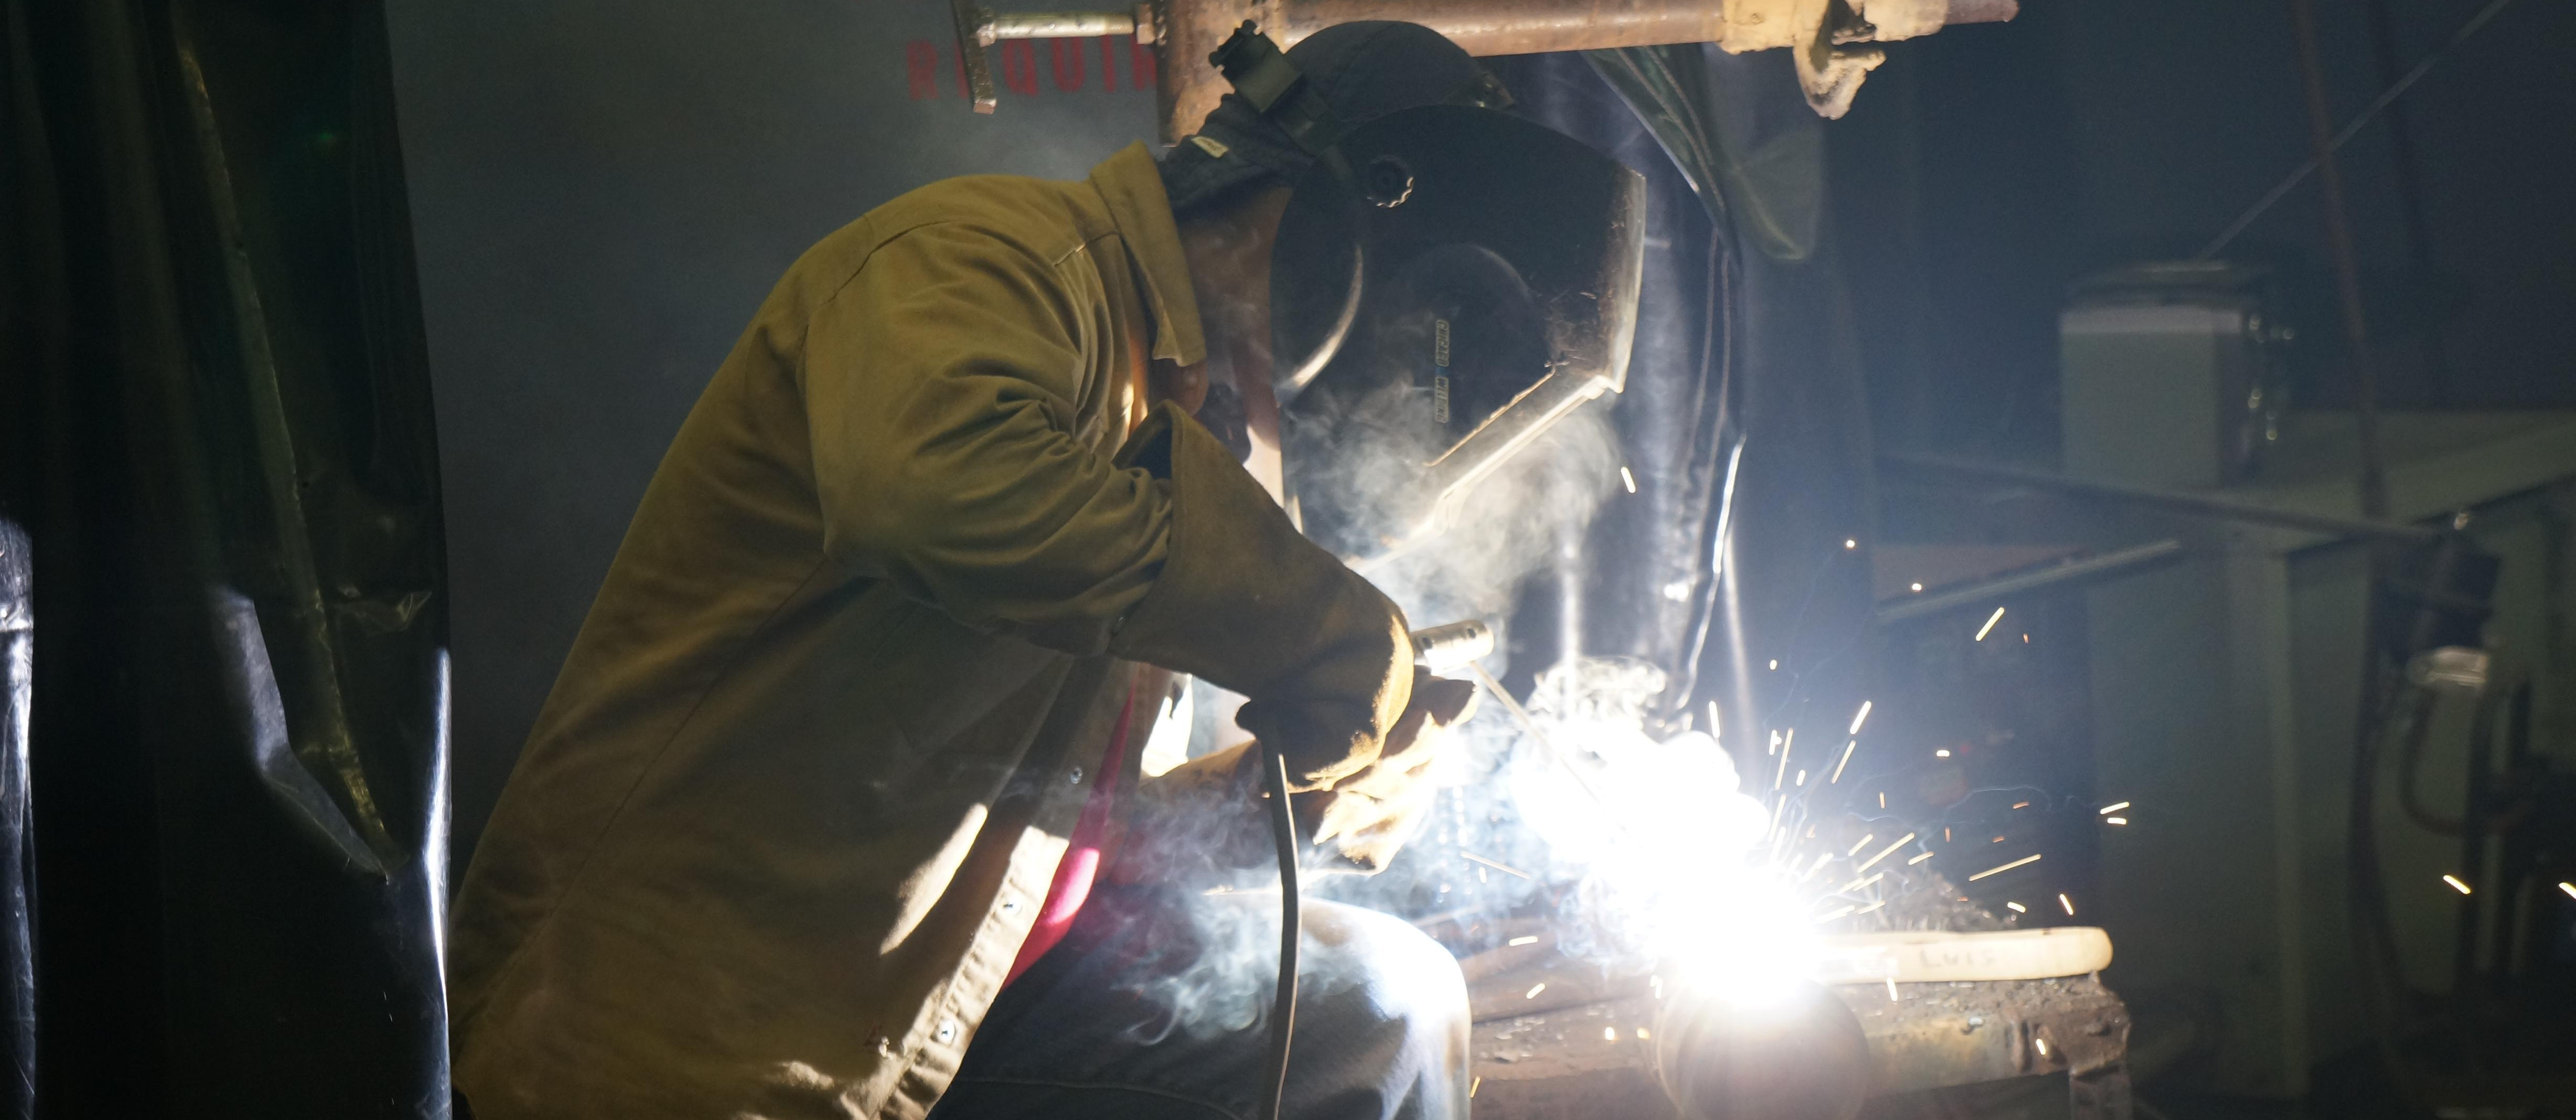 Student practices their welding